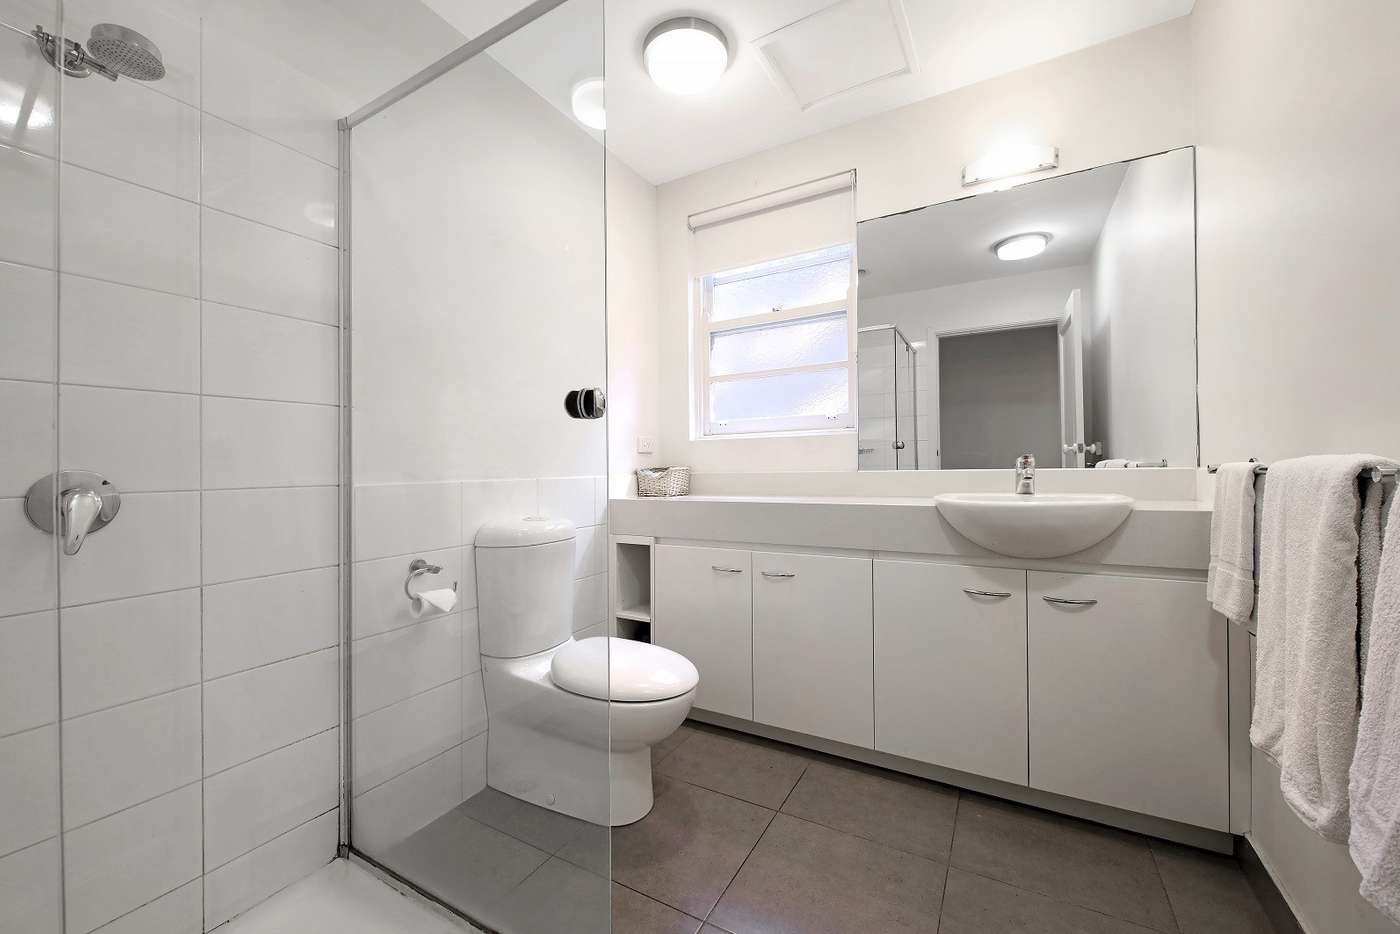 Sixth view of Homely apartment listing, 5/352 Albert Road, South Melbourne VIC 3205